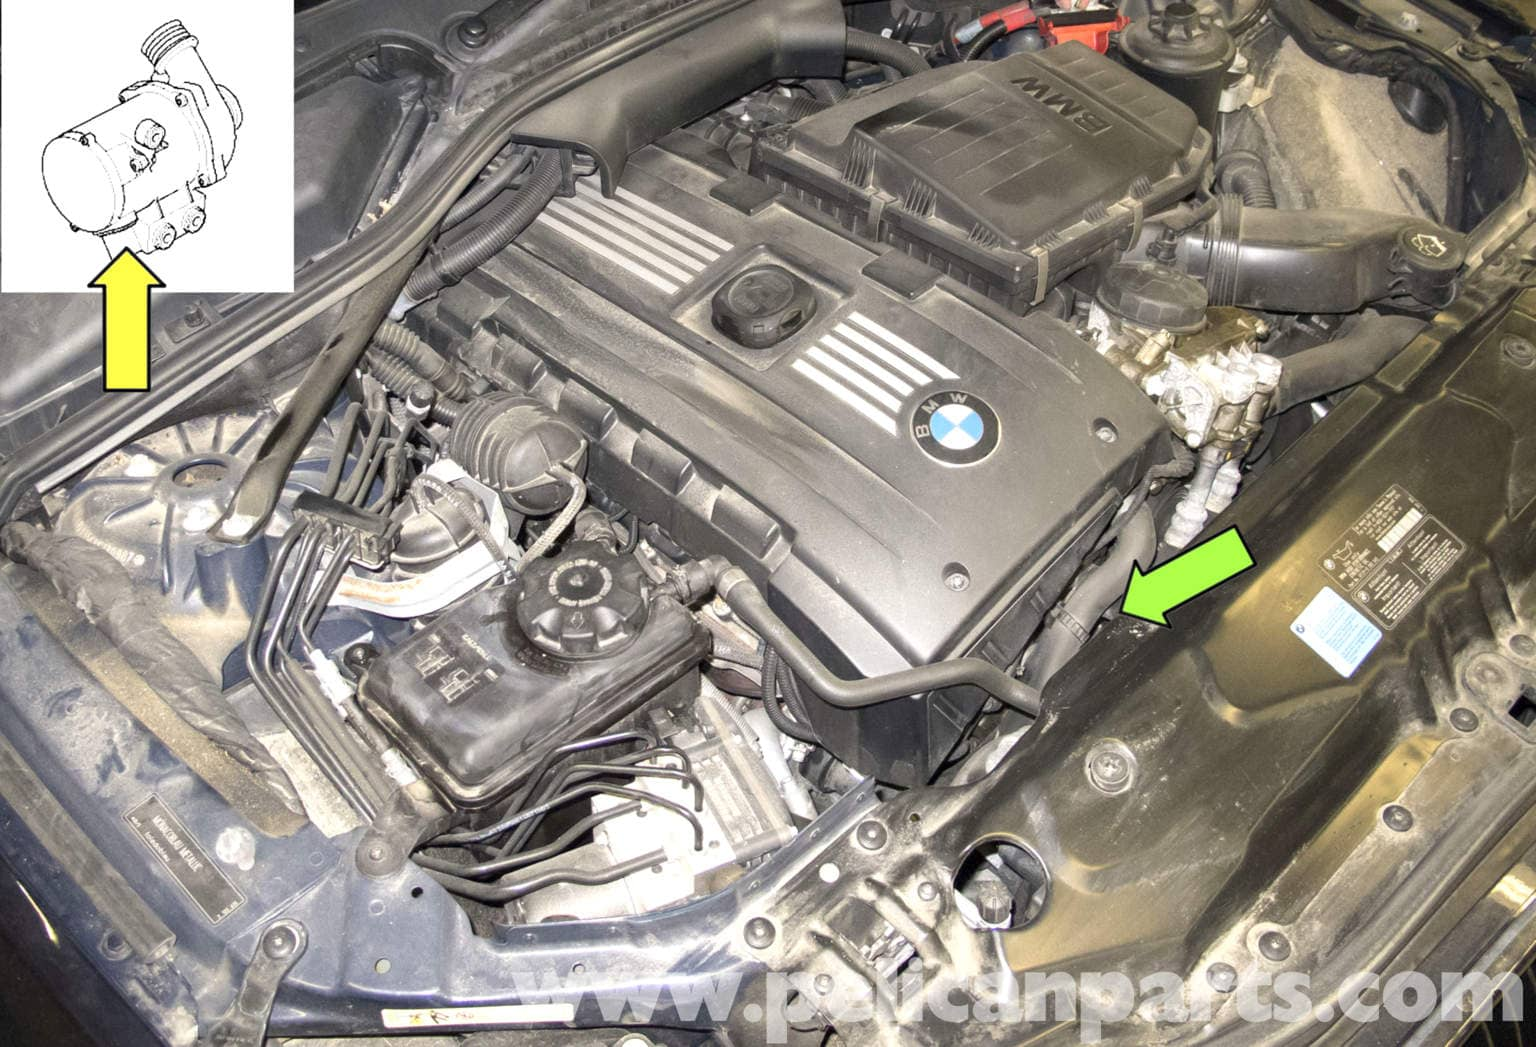 Bmw E60 5 Series Water Pump Testing Pelican Parts Technical Article 2010 F01 Wiring Diagram Ac Large Image